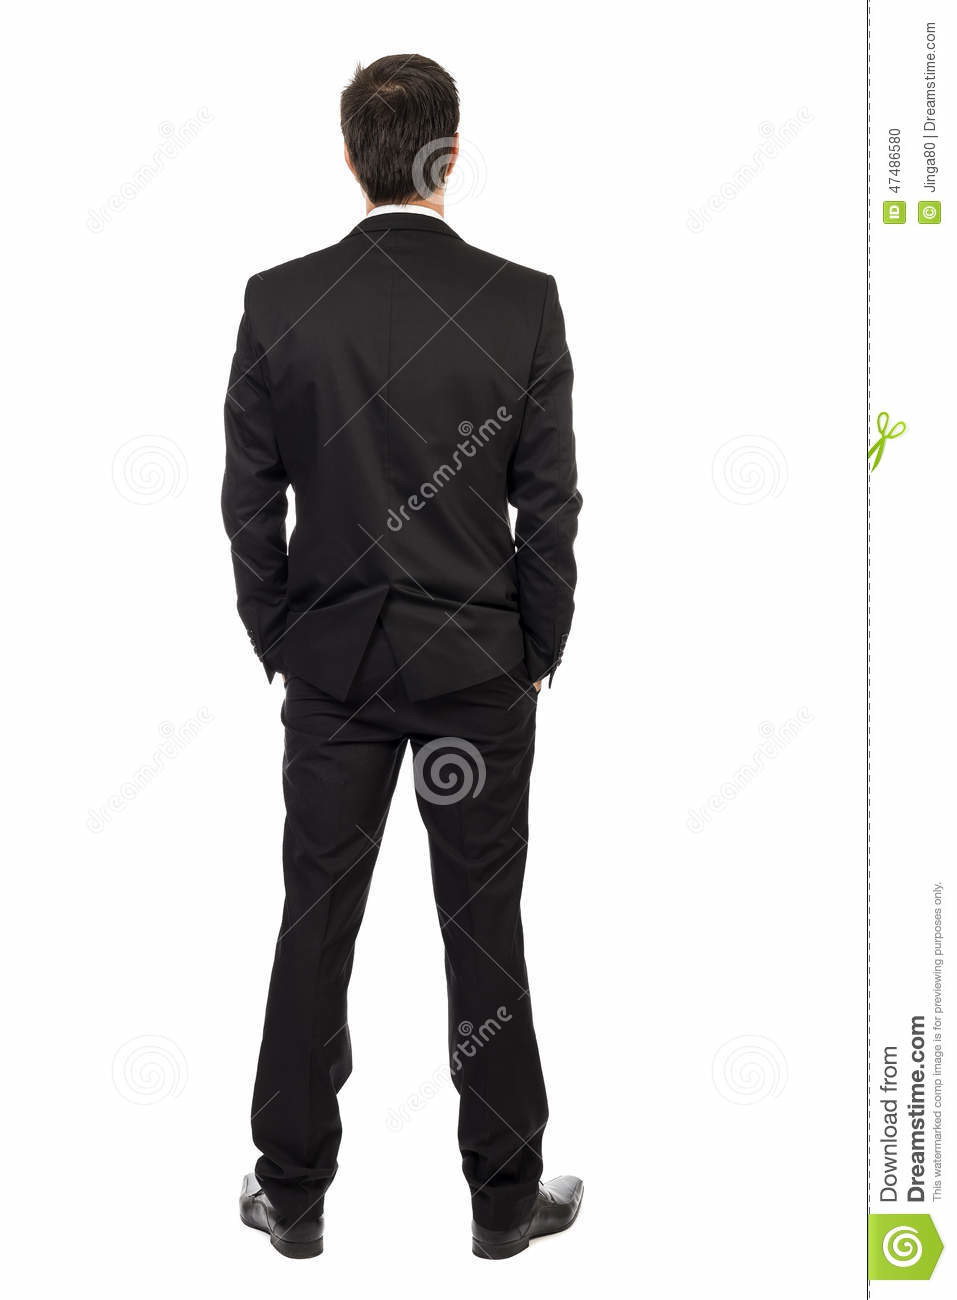 Davidson richetto boucher full body portrait young businessman back view hands pocket isolated over white background 47486580